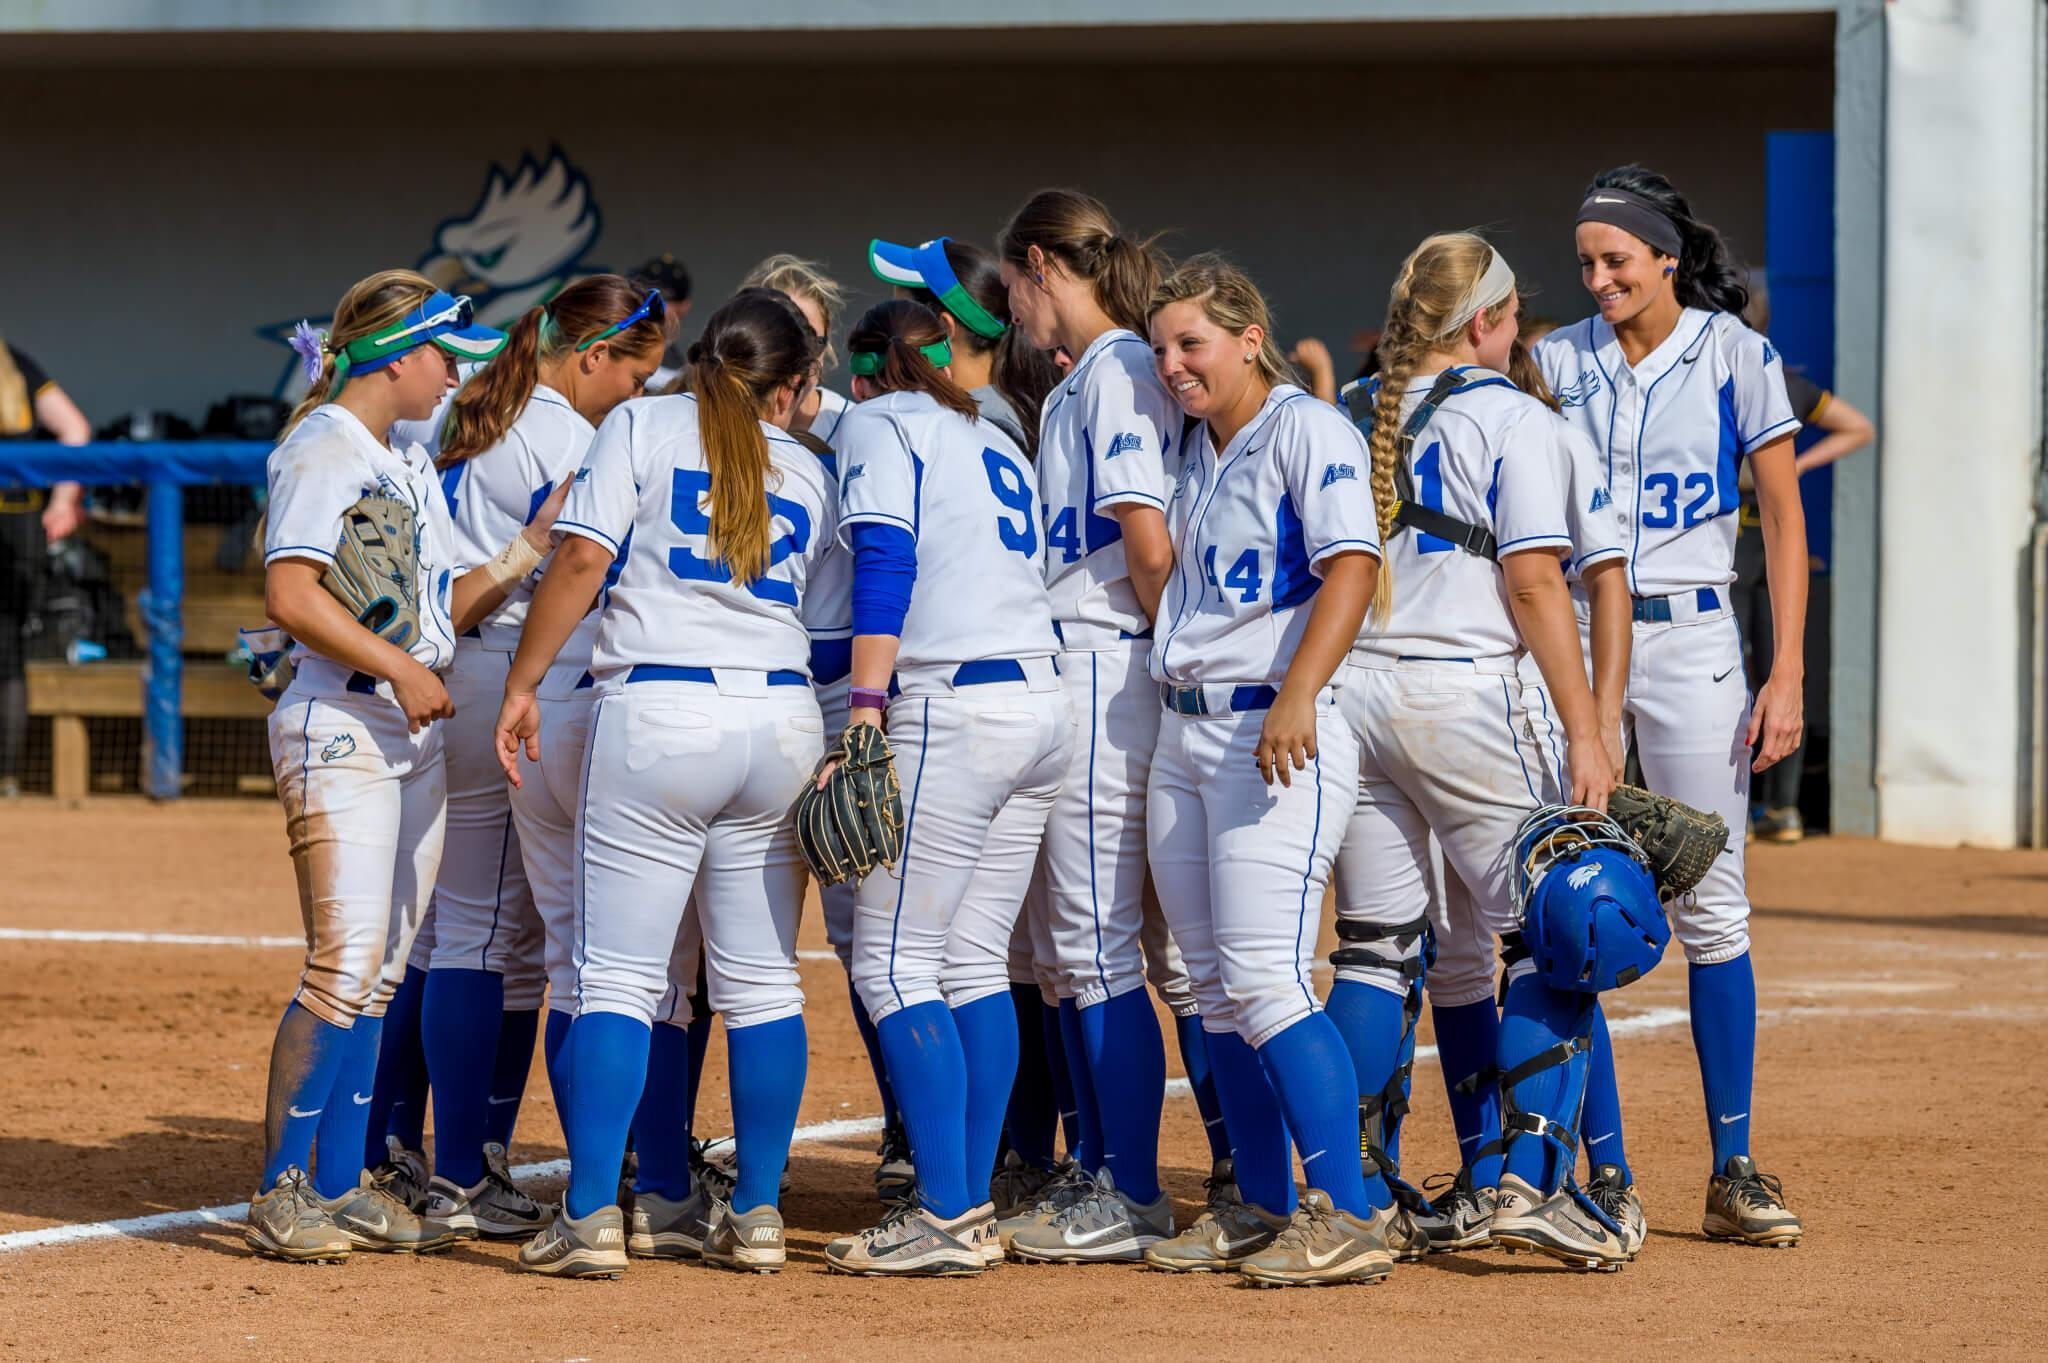 FGCU softball sweeps UNF to propel to the top of the Atlantic Sun Conference